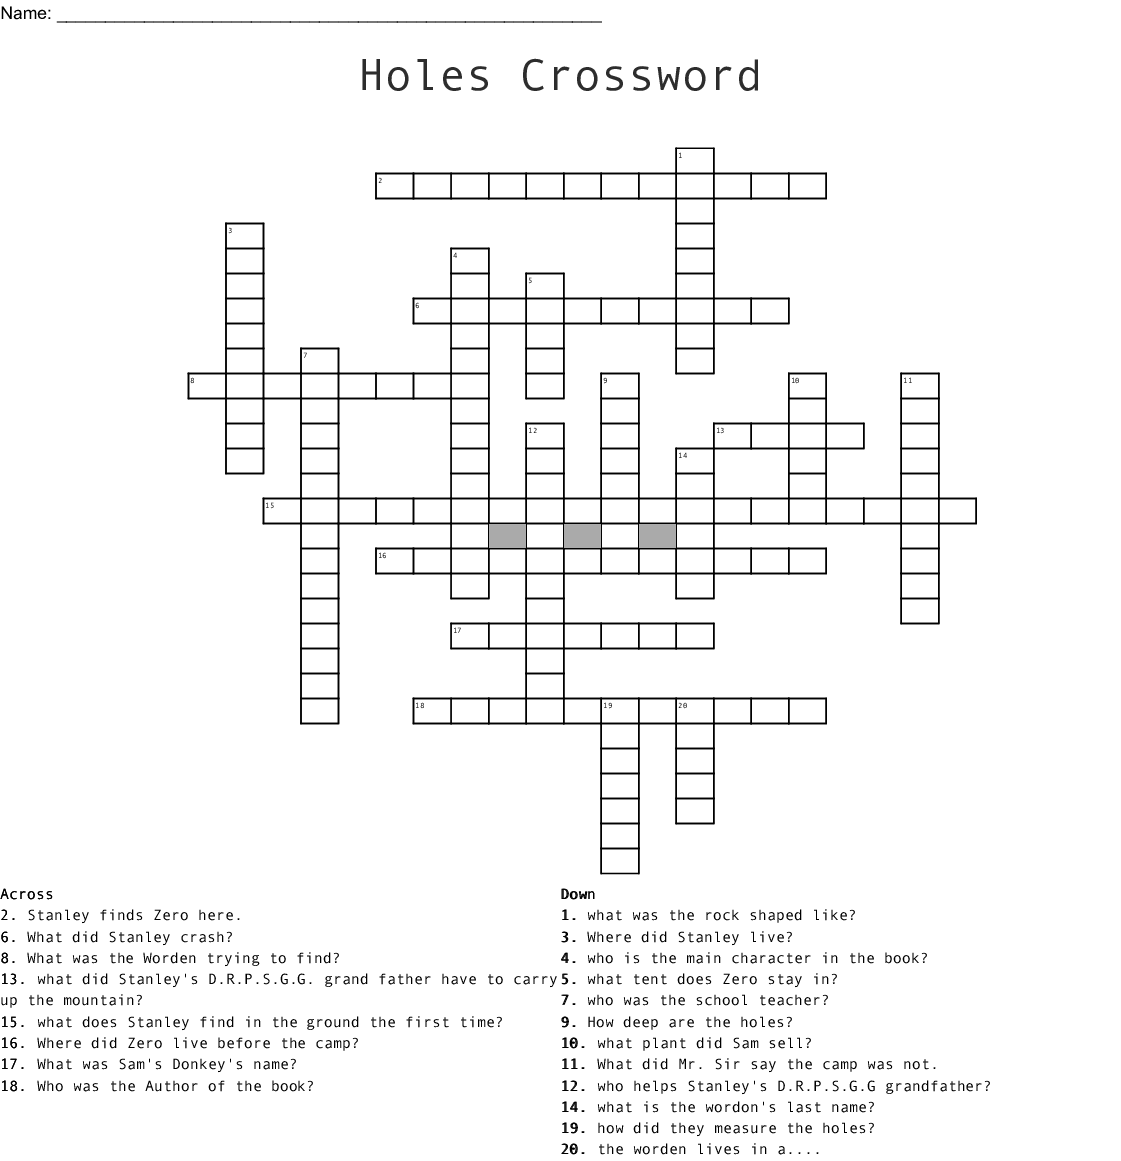 zigzag word search puzzles holes bylouis sachar crossword wordmint puzzles zigzag search word